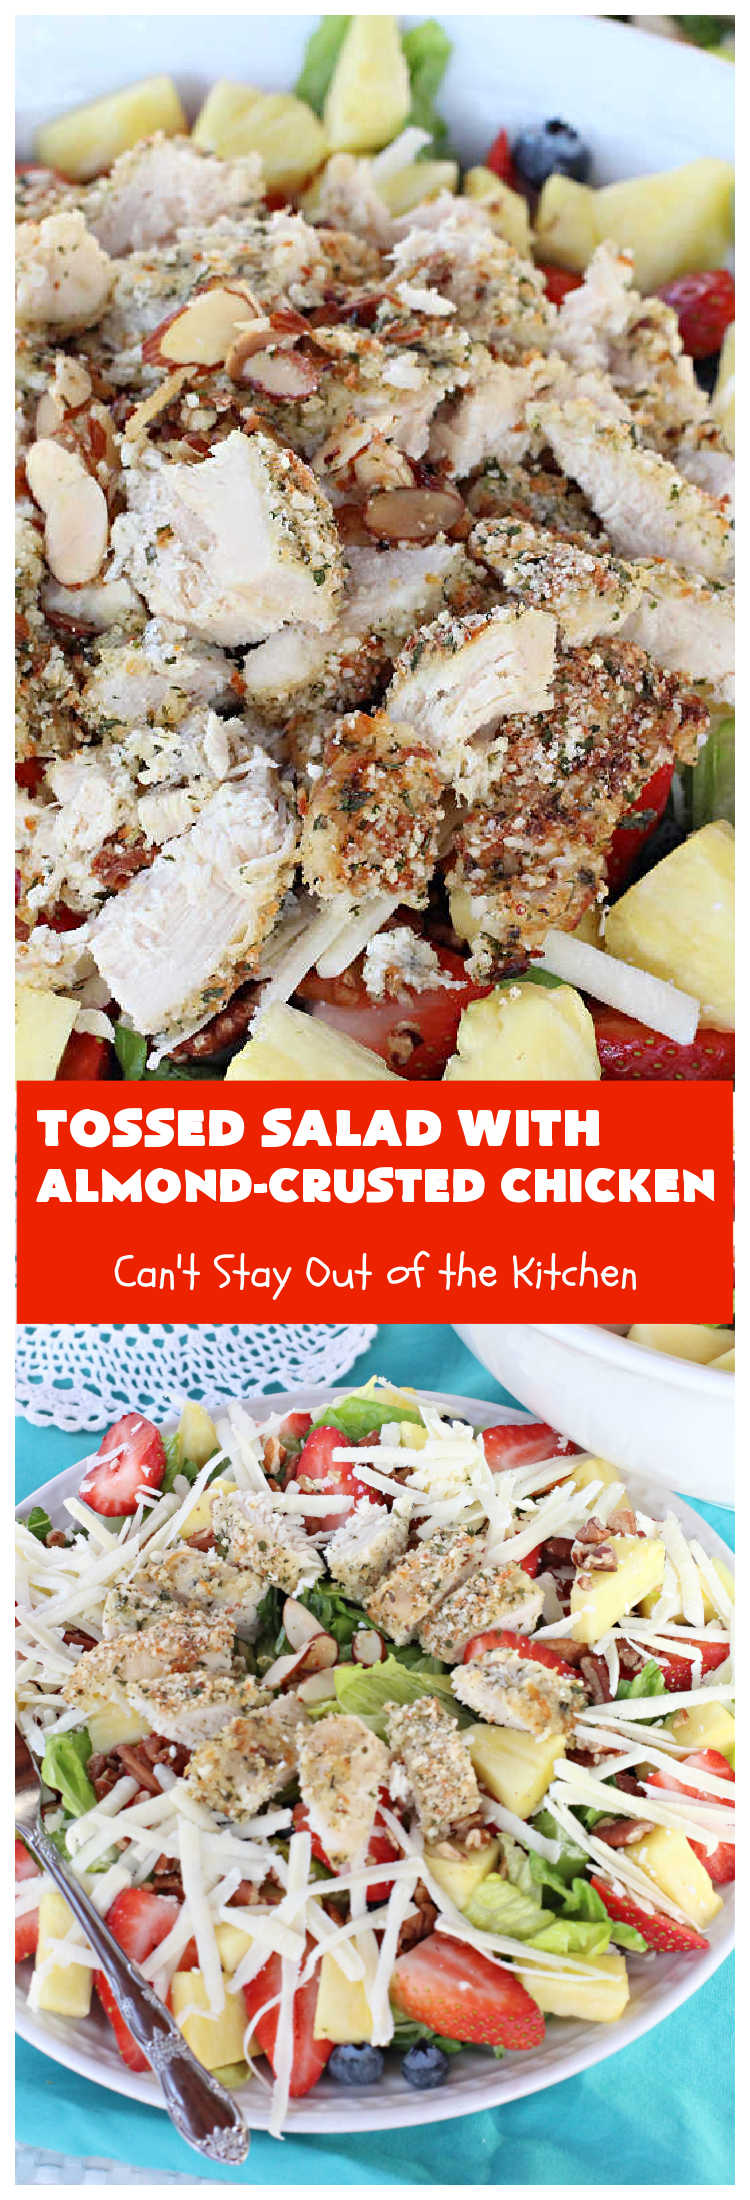 Tossed Salad with Almond-Crusted Chicken | Can't Stay Out of the Kitchen | this amazing #salad is fabulous for main dish meals or company dinners. It includes #pineapple #strawberries #blueberries #pecans & #RomanoCheese. It's topped with #AlmondCrustedChicken so the recipe is #GlutenFree #healthy & #CleanEating. #chicken #TossedSaladWithAlmondCrustedChicken